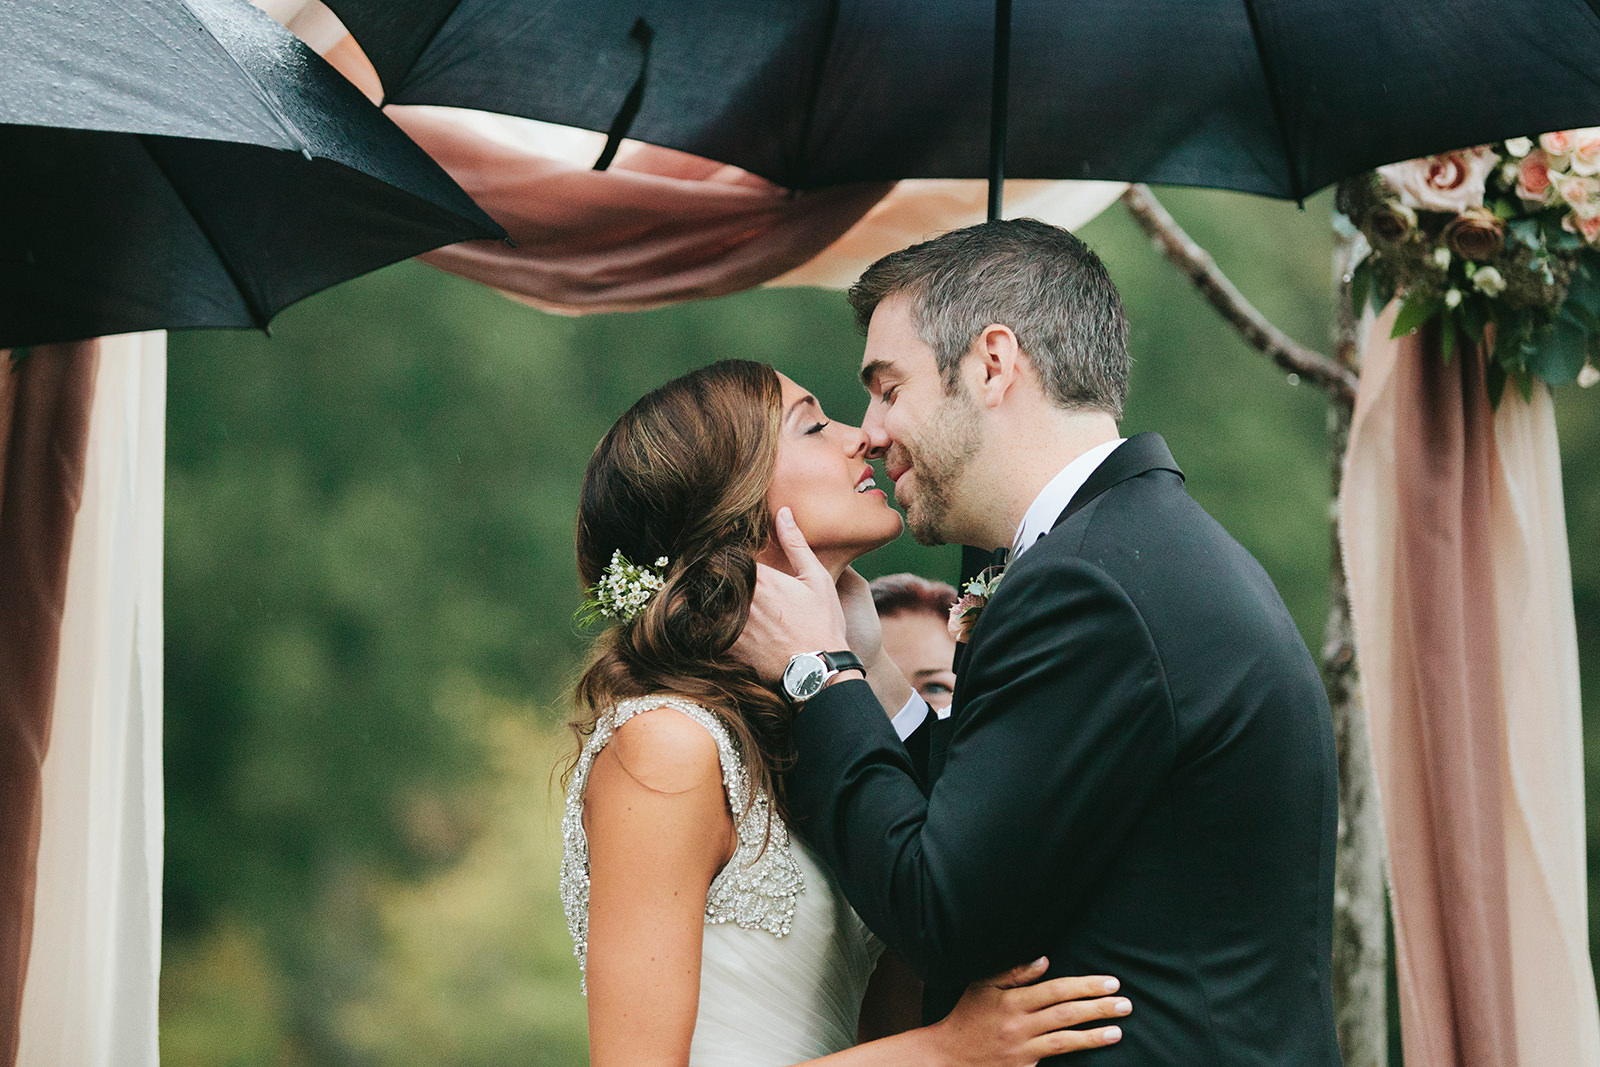 rainy outdoor wedding ceremony